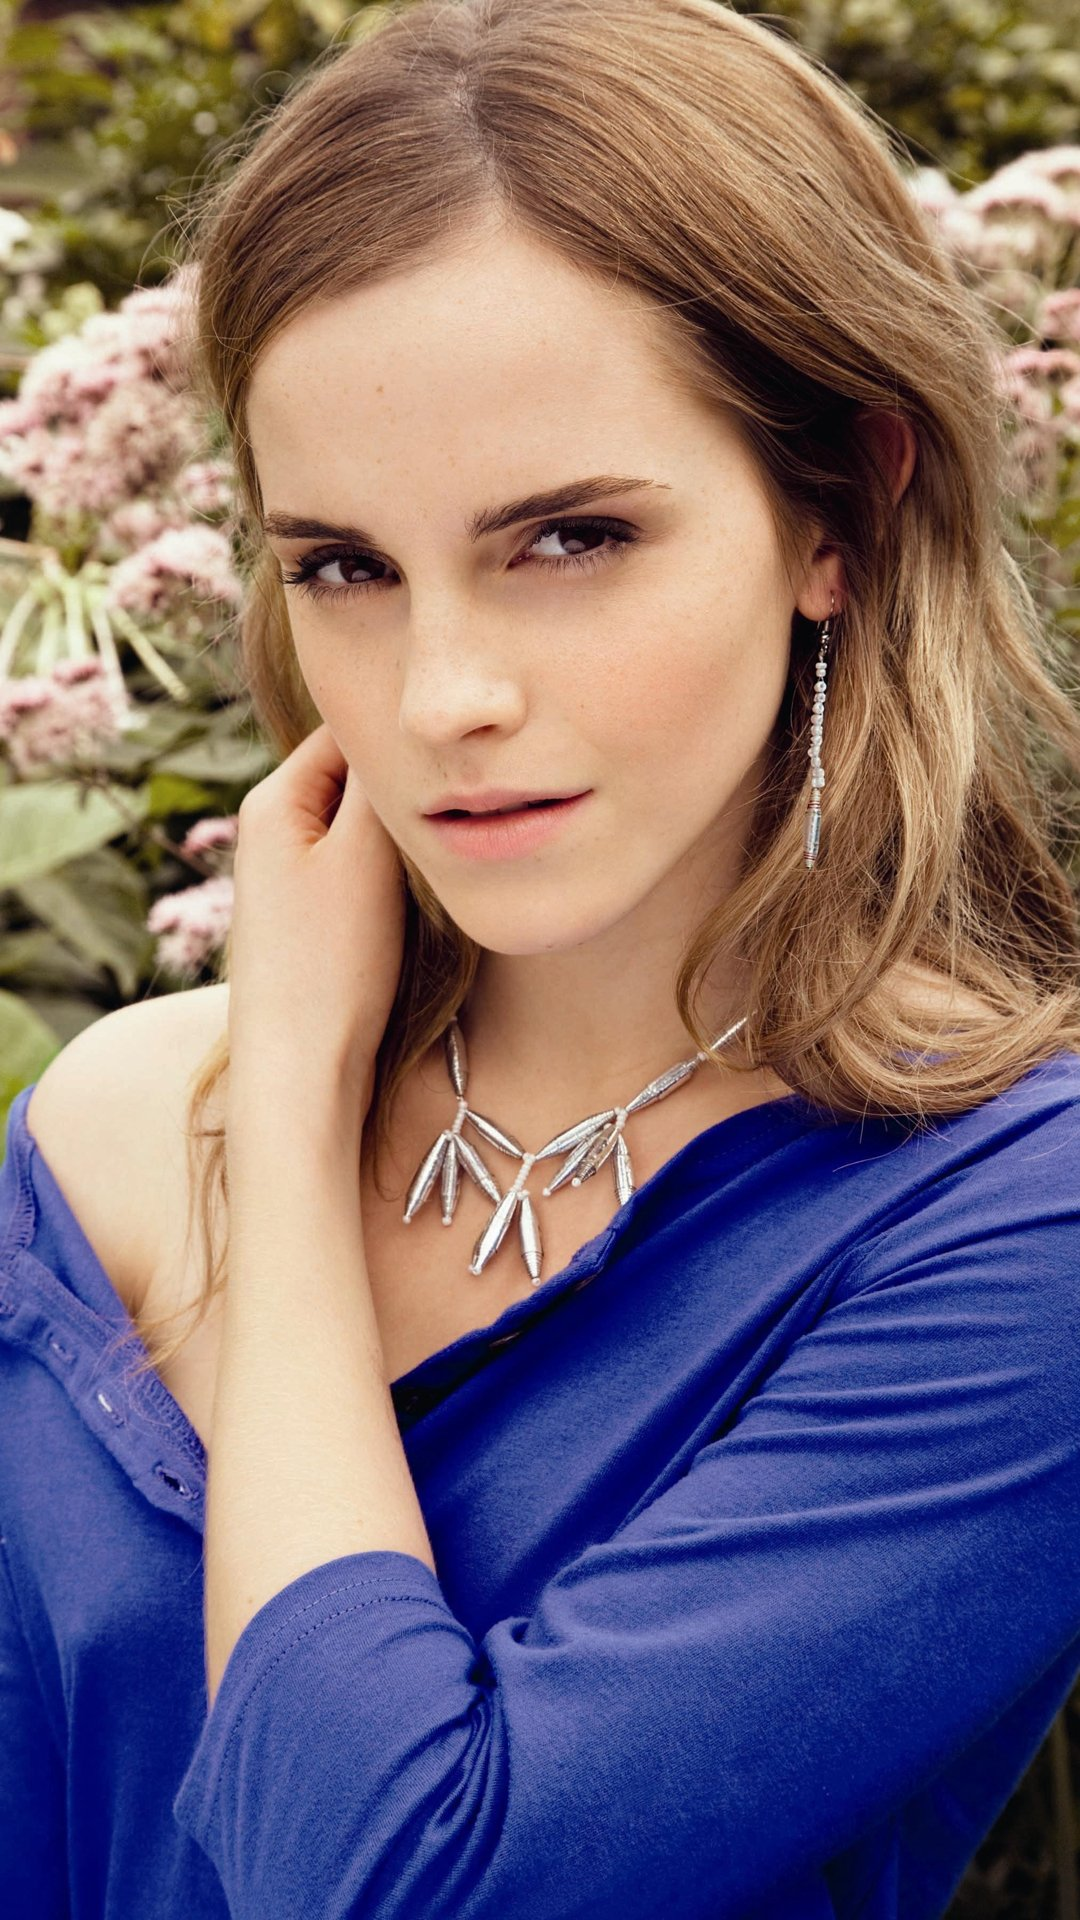 Beautiful Emma Watson Wallpaper for iPhone